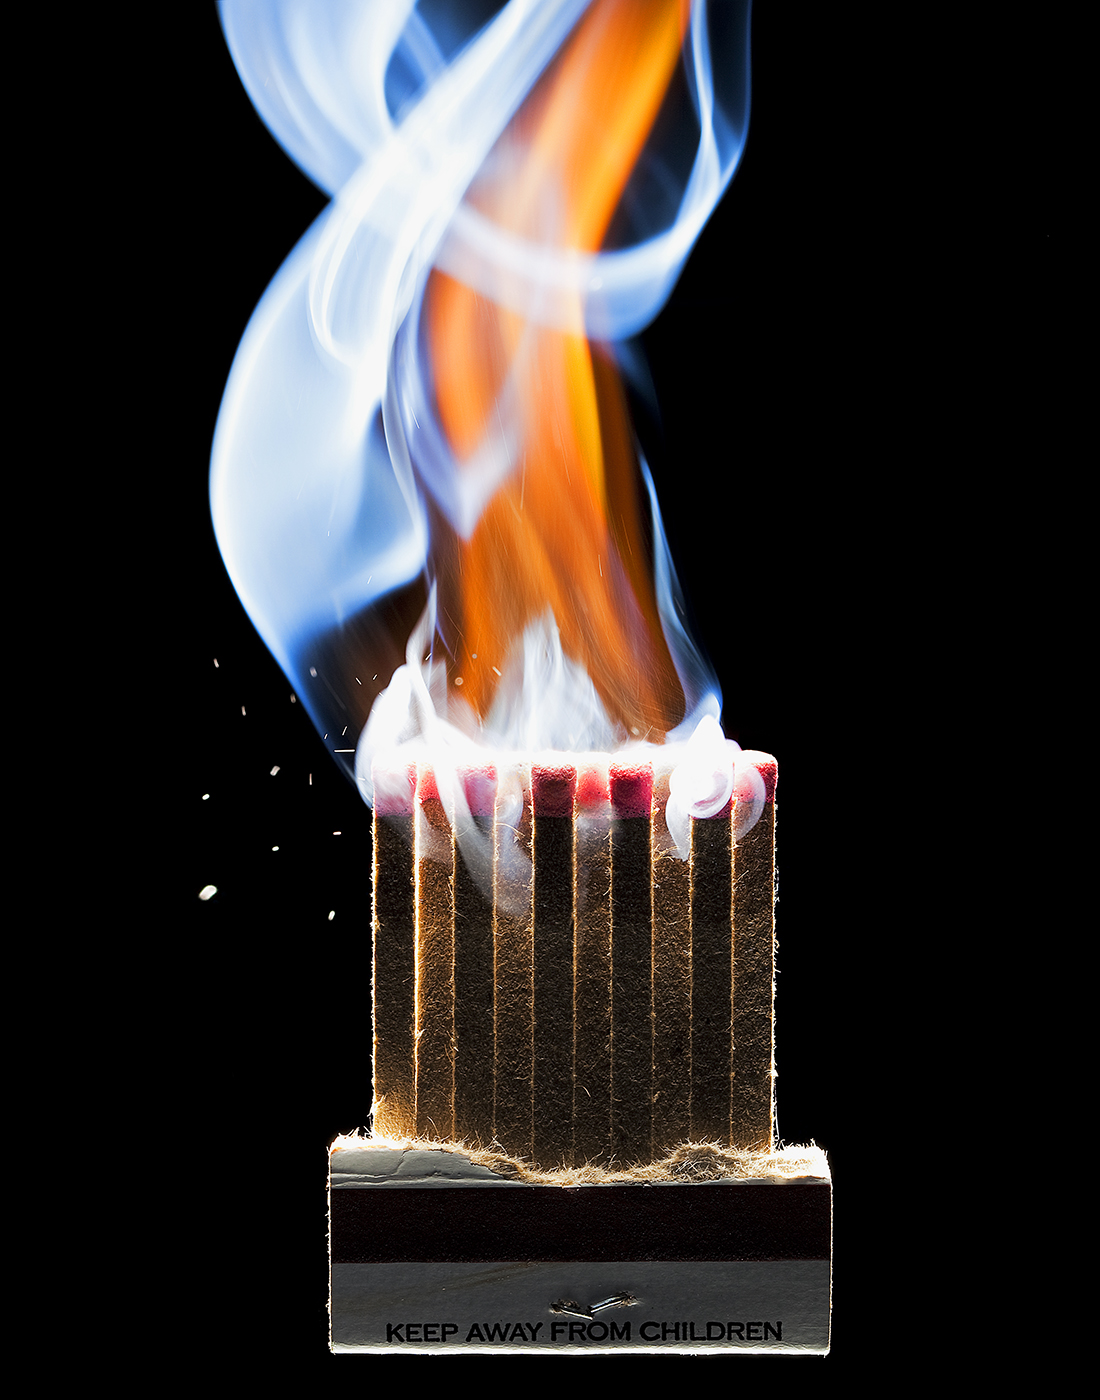 BOOK OF MATCHS SHOT AT THE EXACT MOMENT OF IGNITION SHOT BY DAVID FILIBERTI